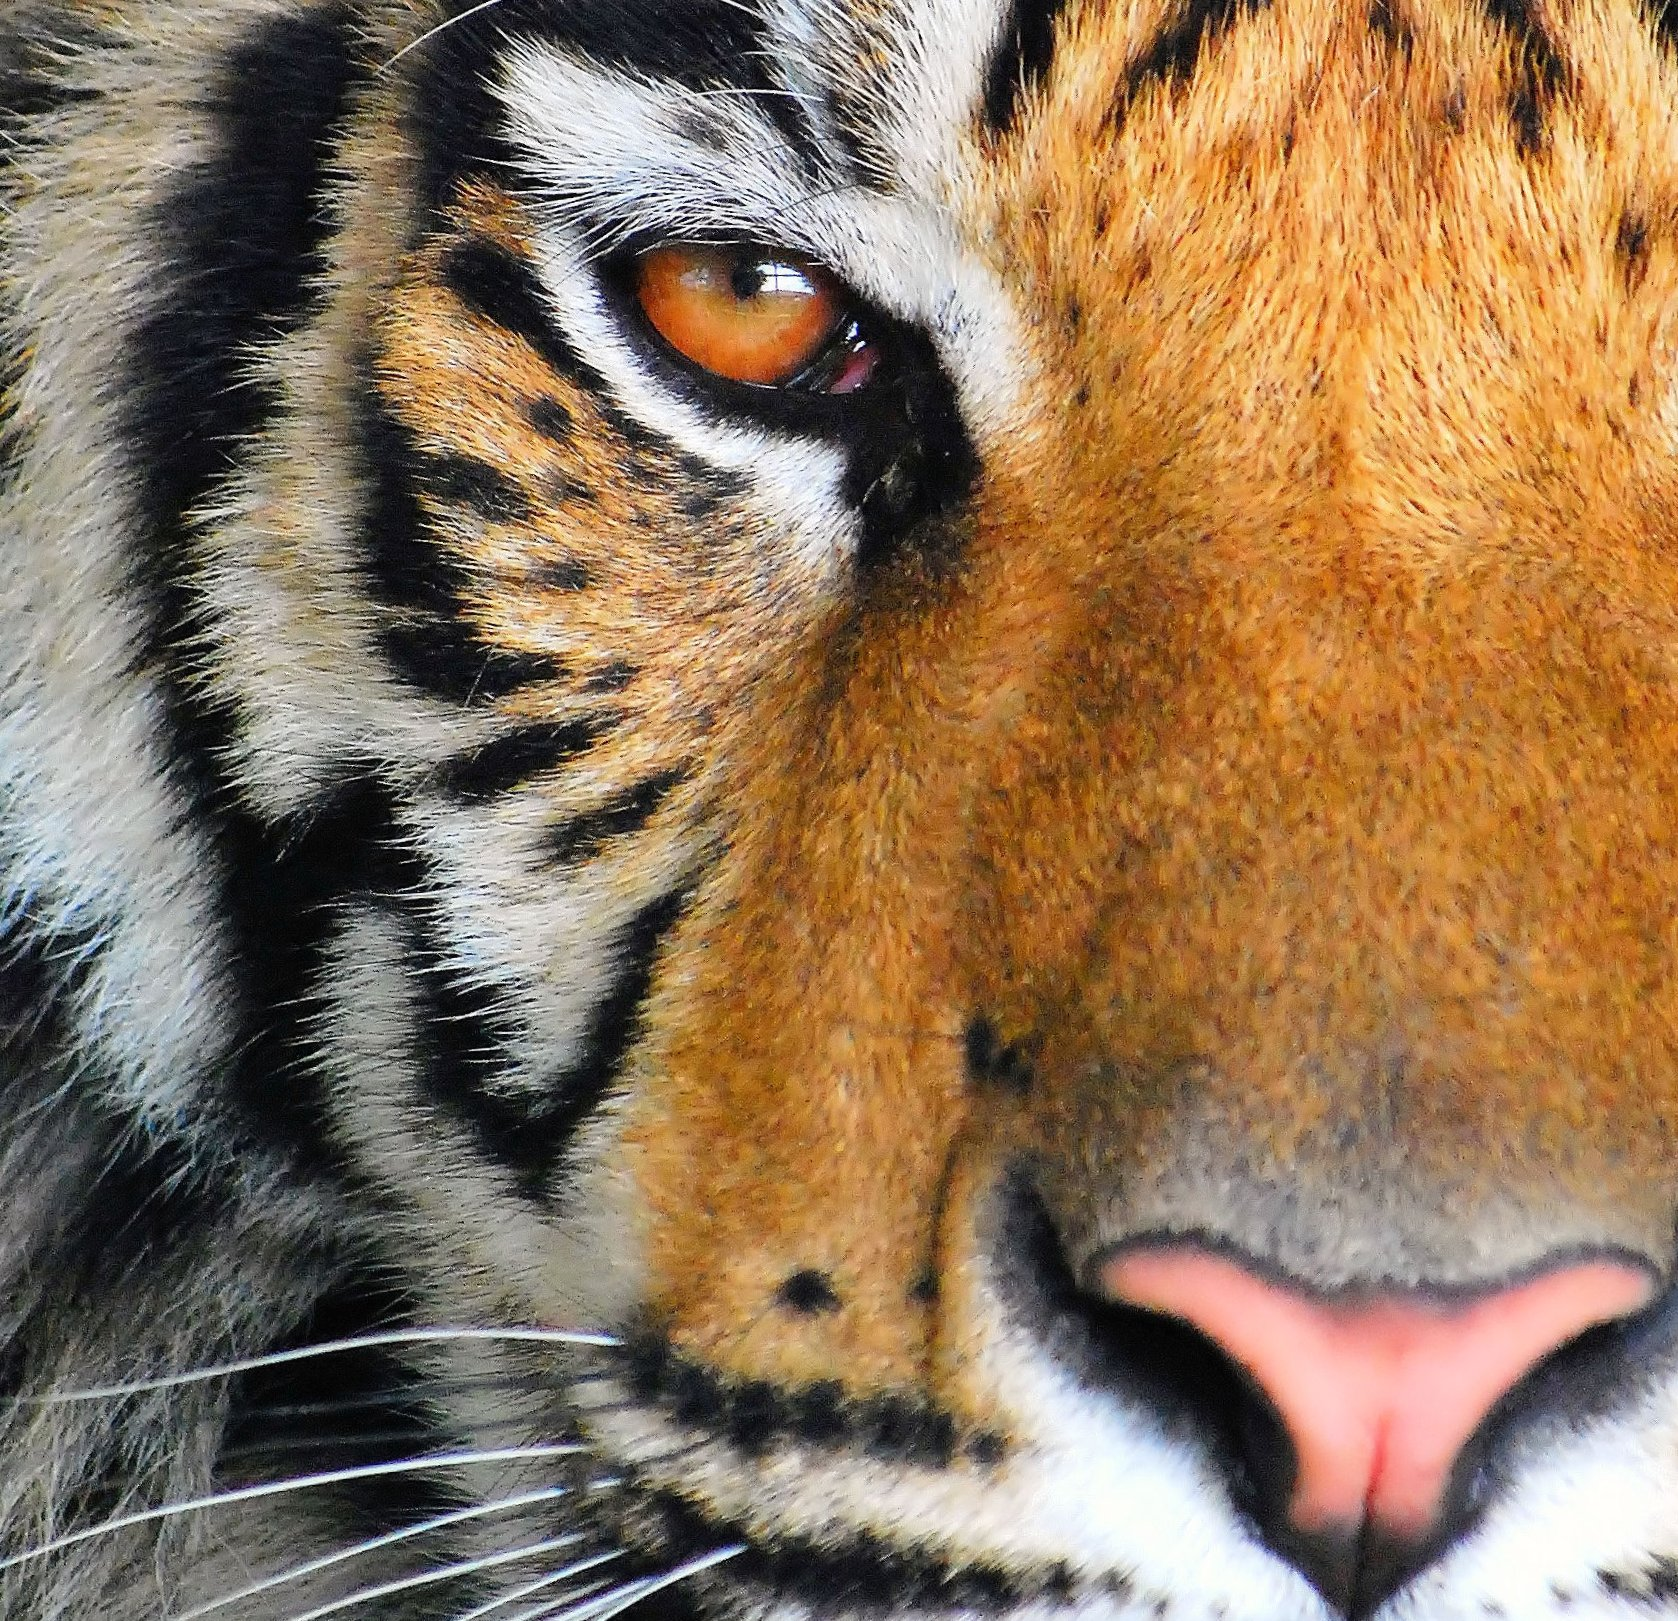 The Eye of the Tiger Nathan Fischer2008 Photograph Print 11x14 or custom $75